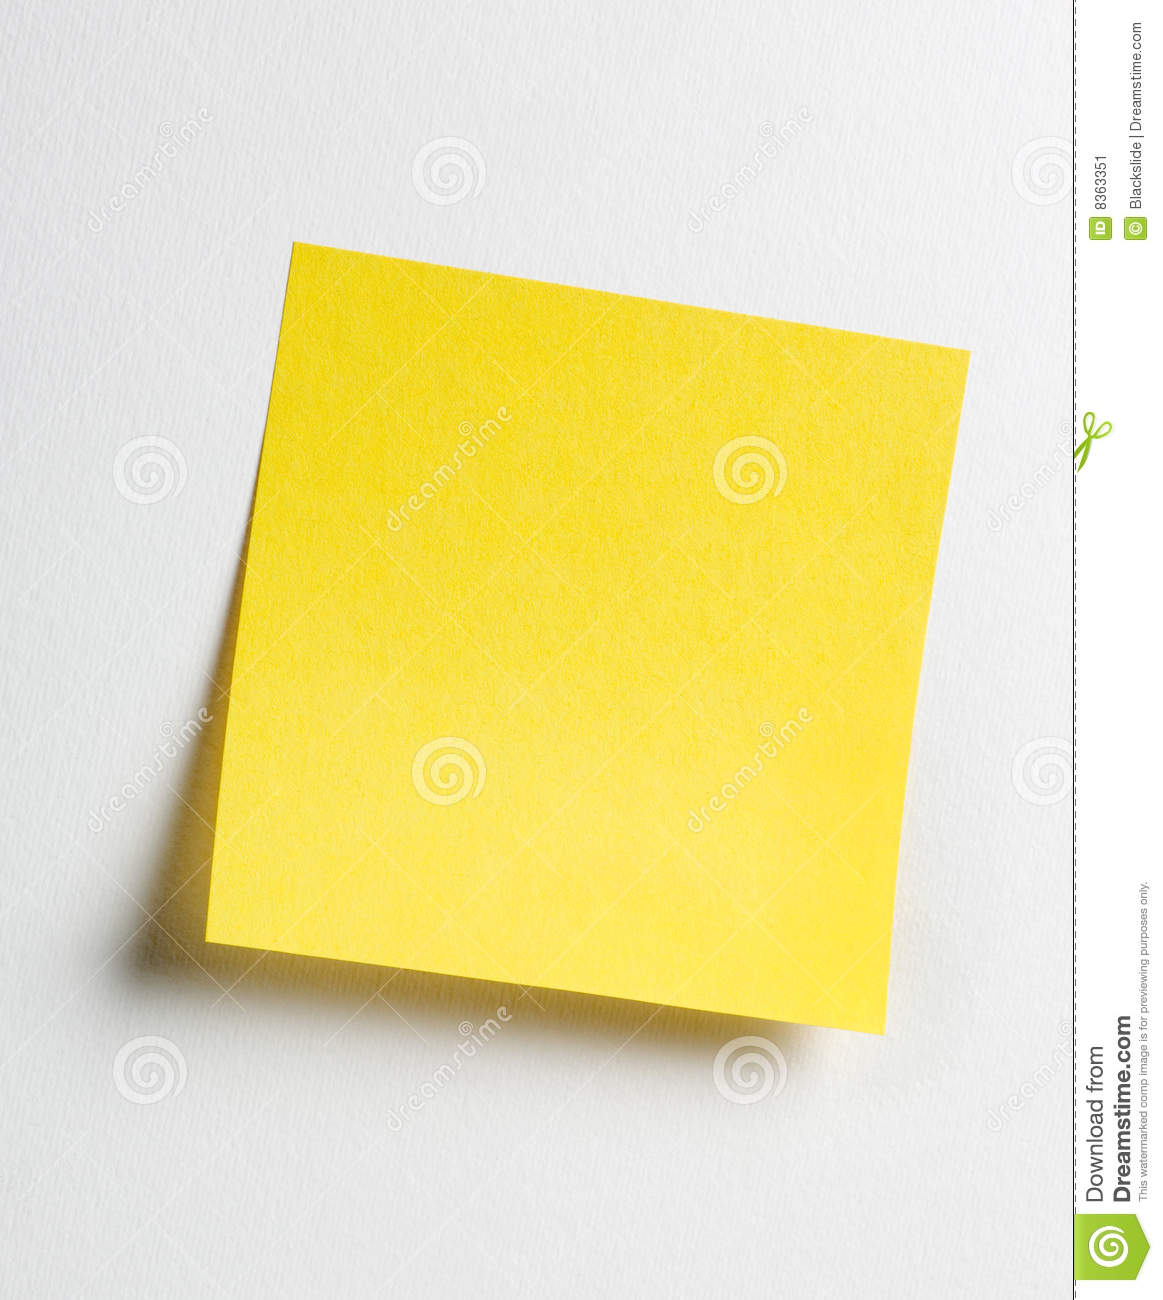 yellow sticky note stock image  image of notice  sticky